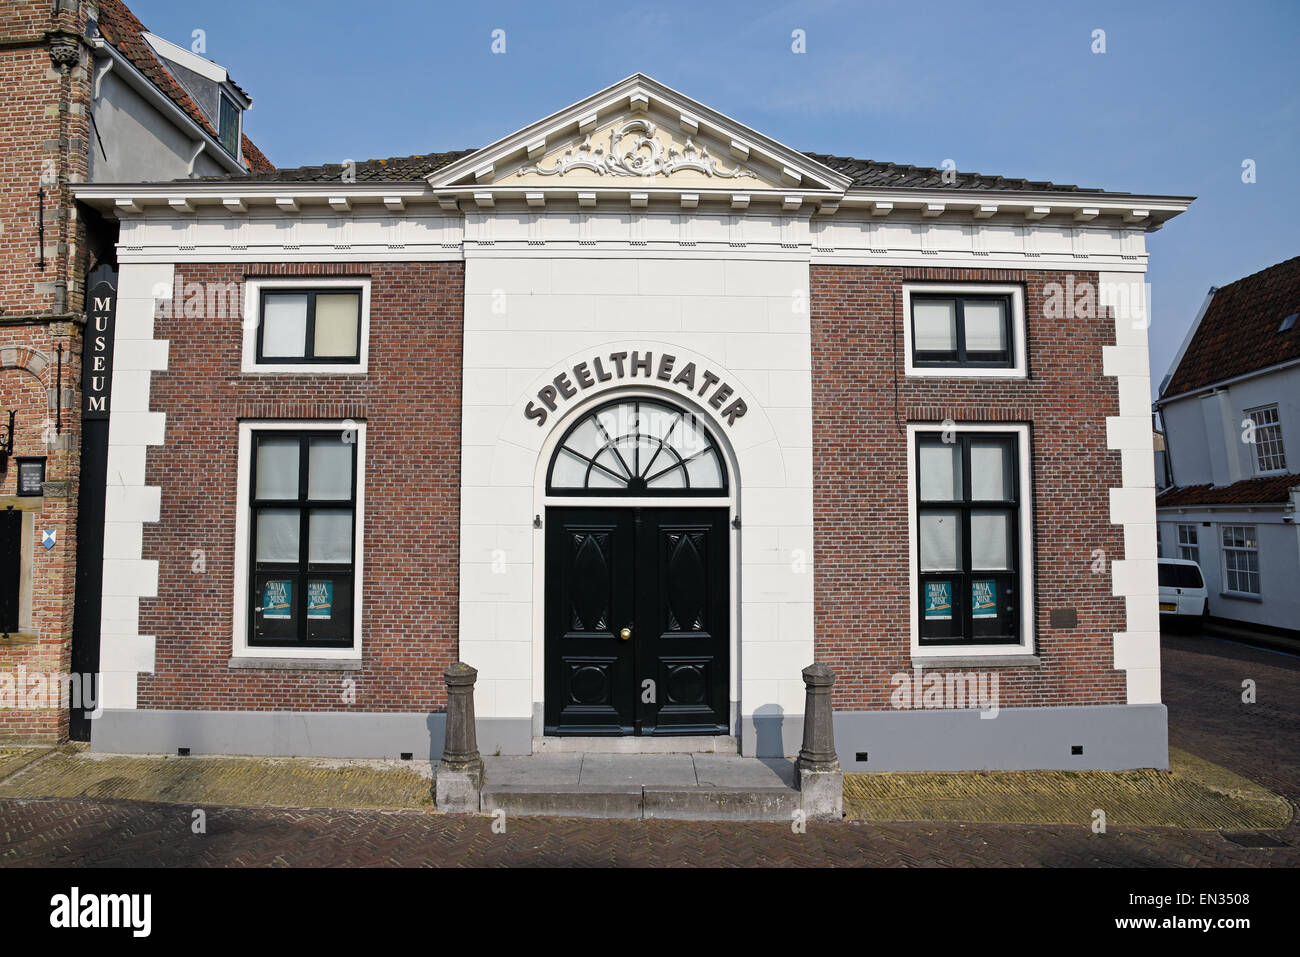 Speeltheater theatre, Edam, province of North Holland, The Netherlands - Stock Image